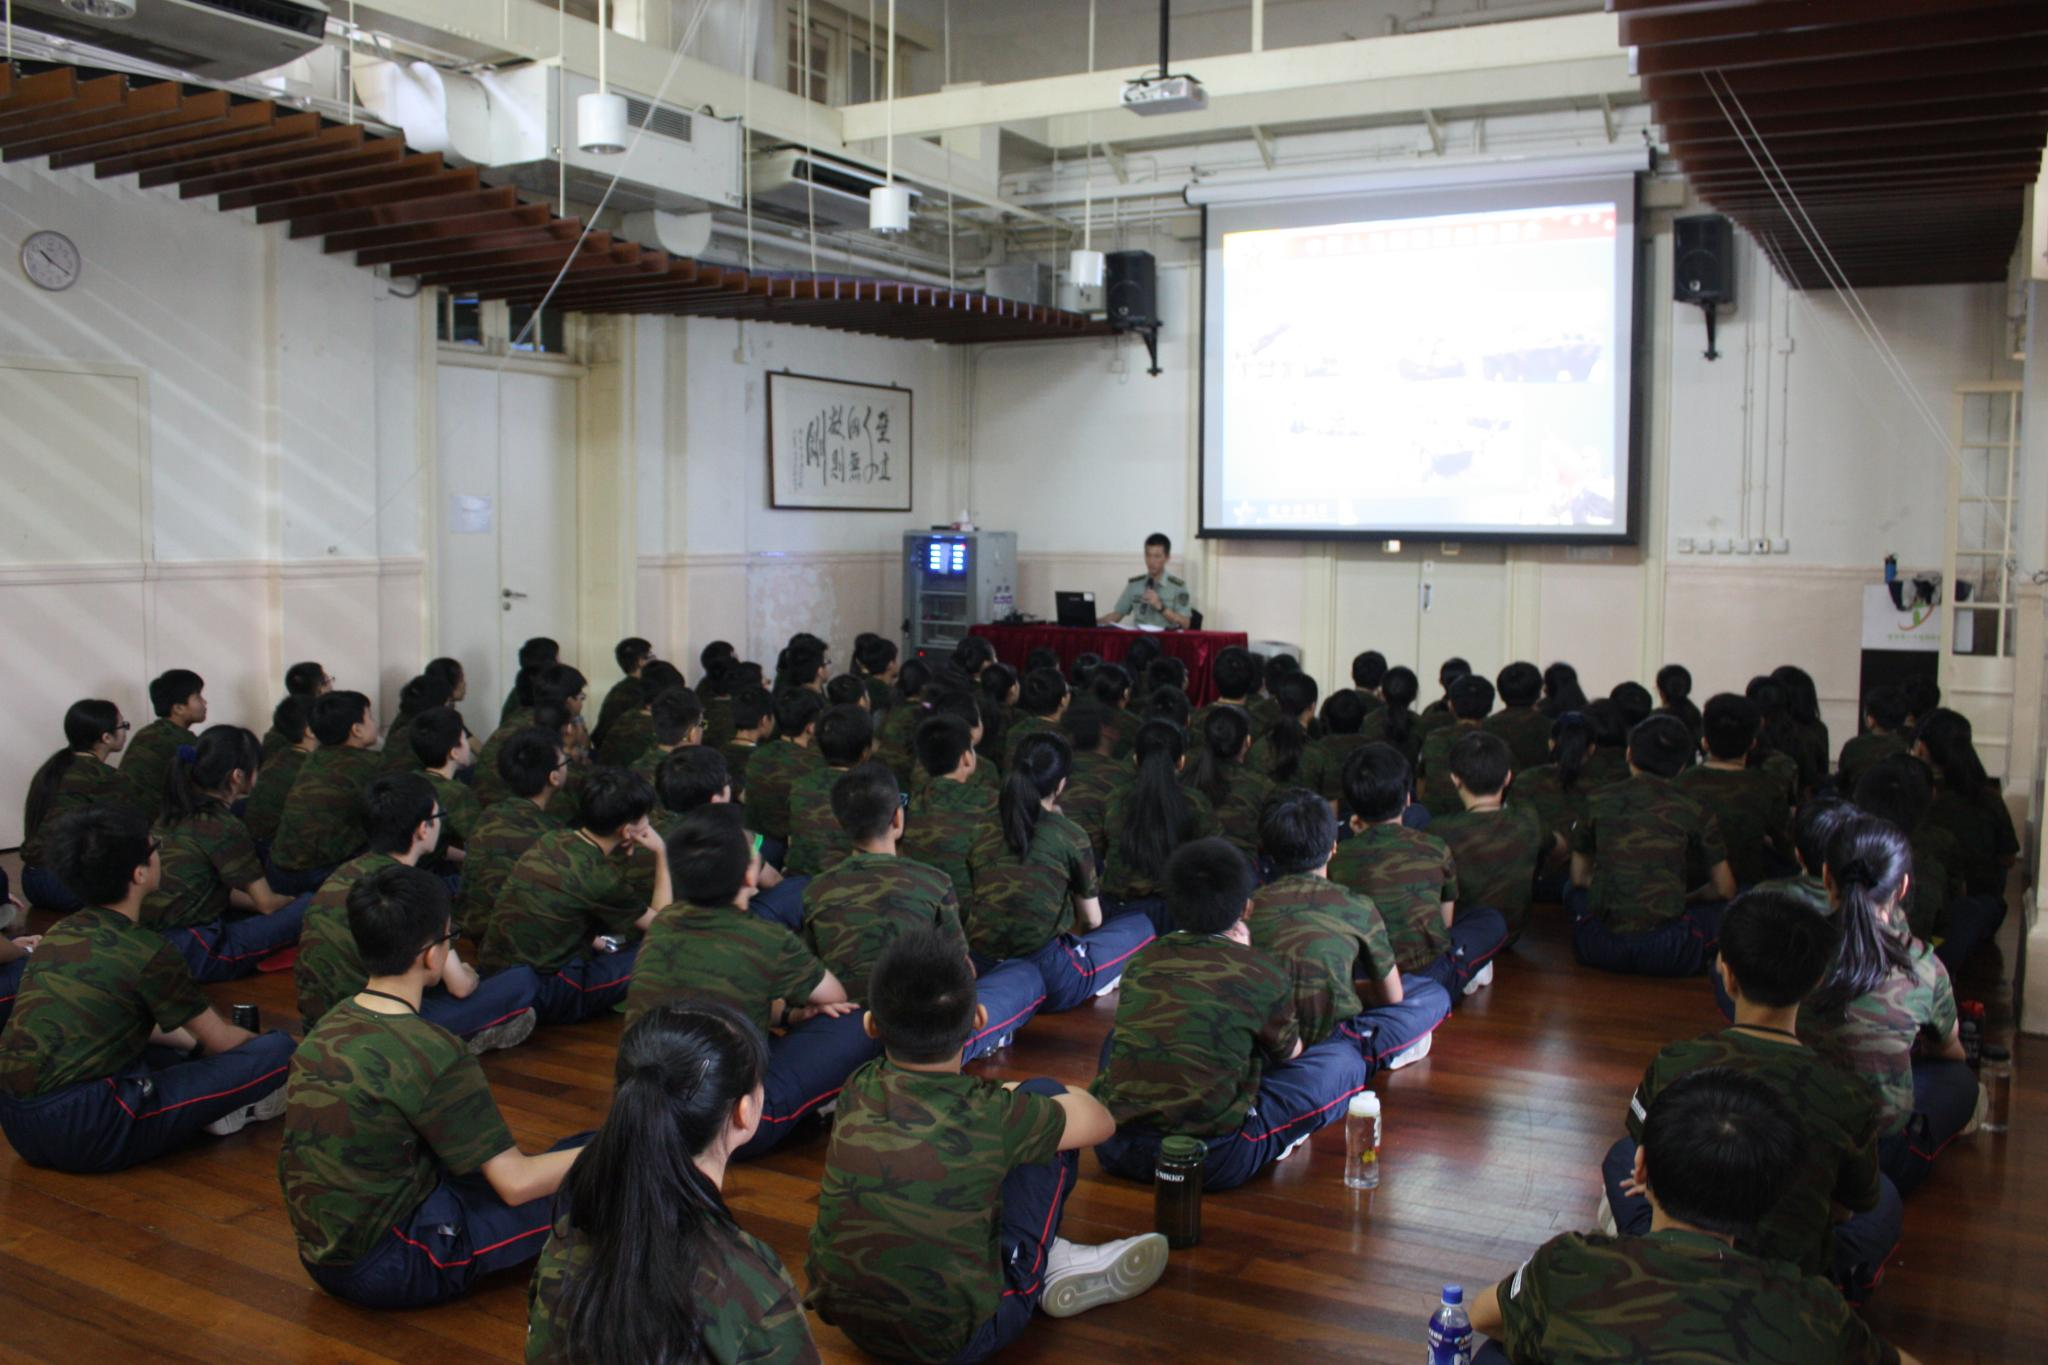 Students are very attentive during the talk delivered by the Chinese People's Liberation Army.